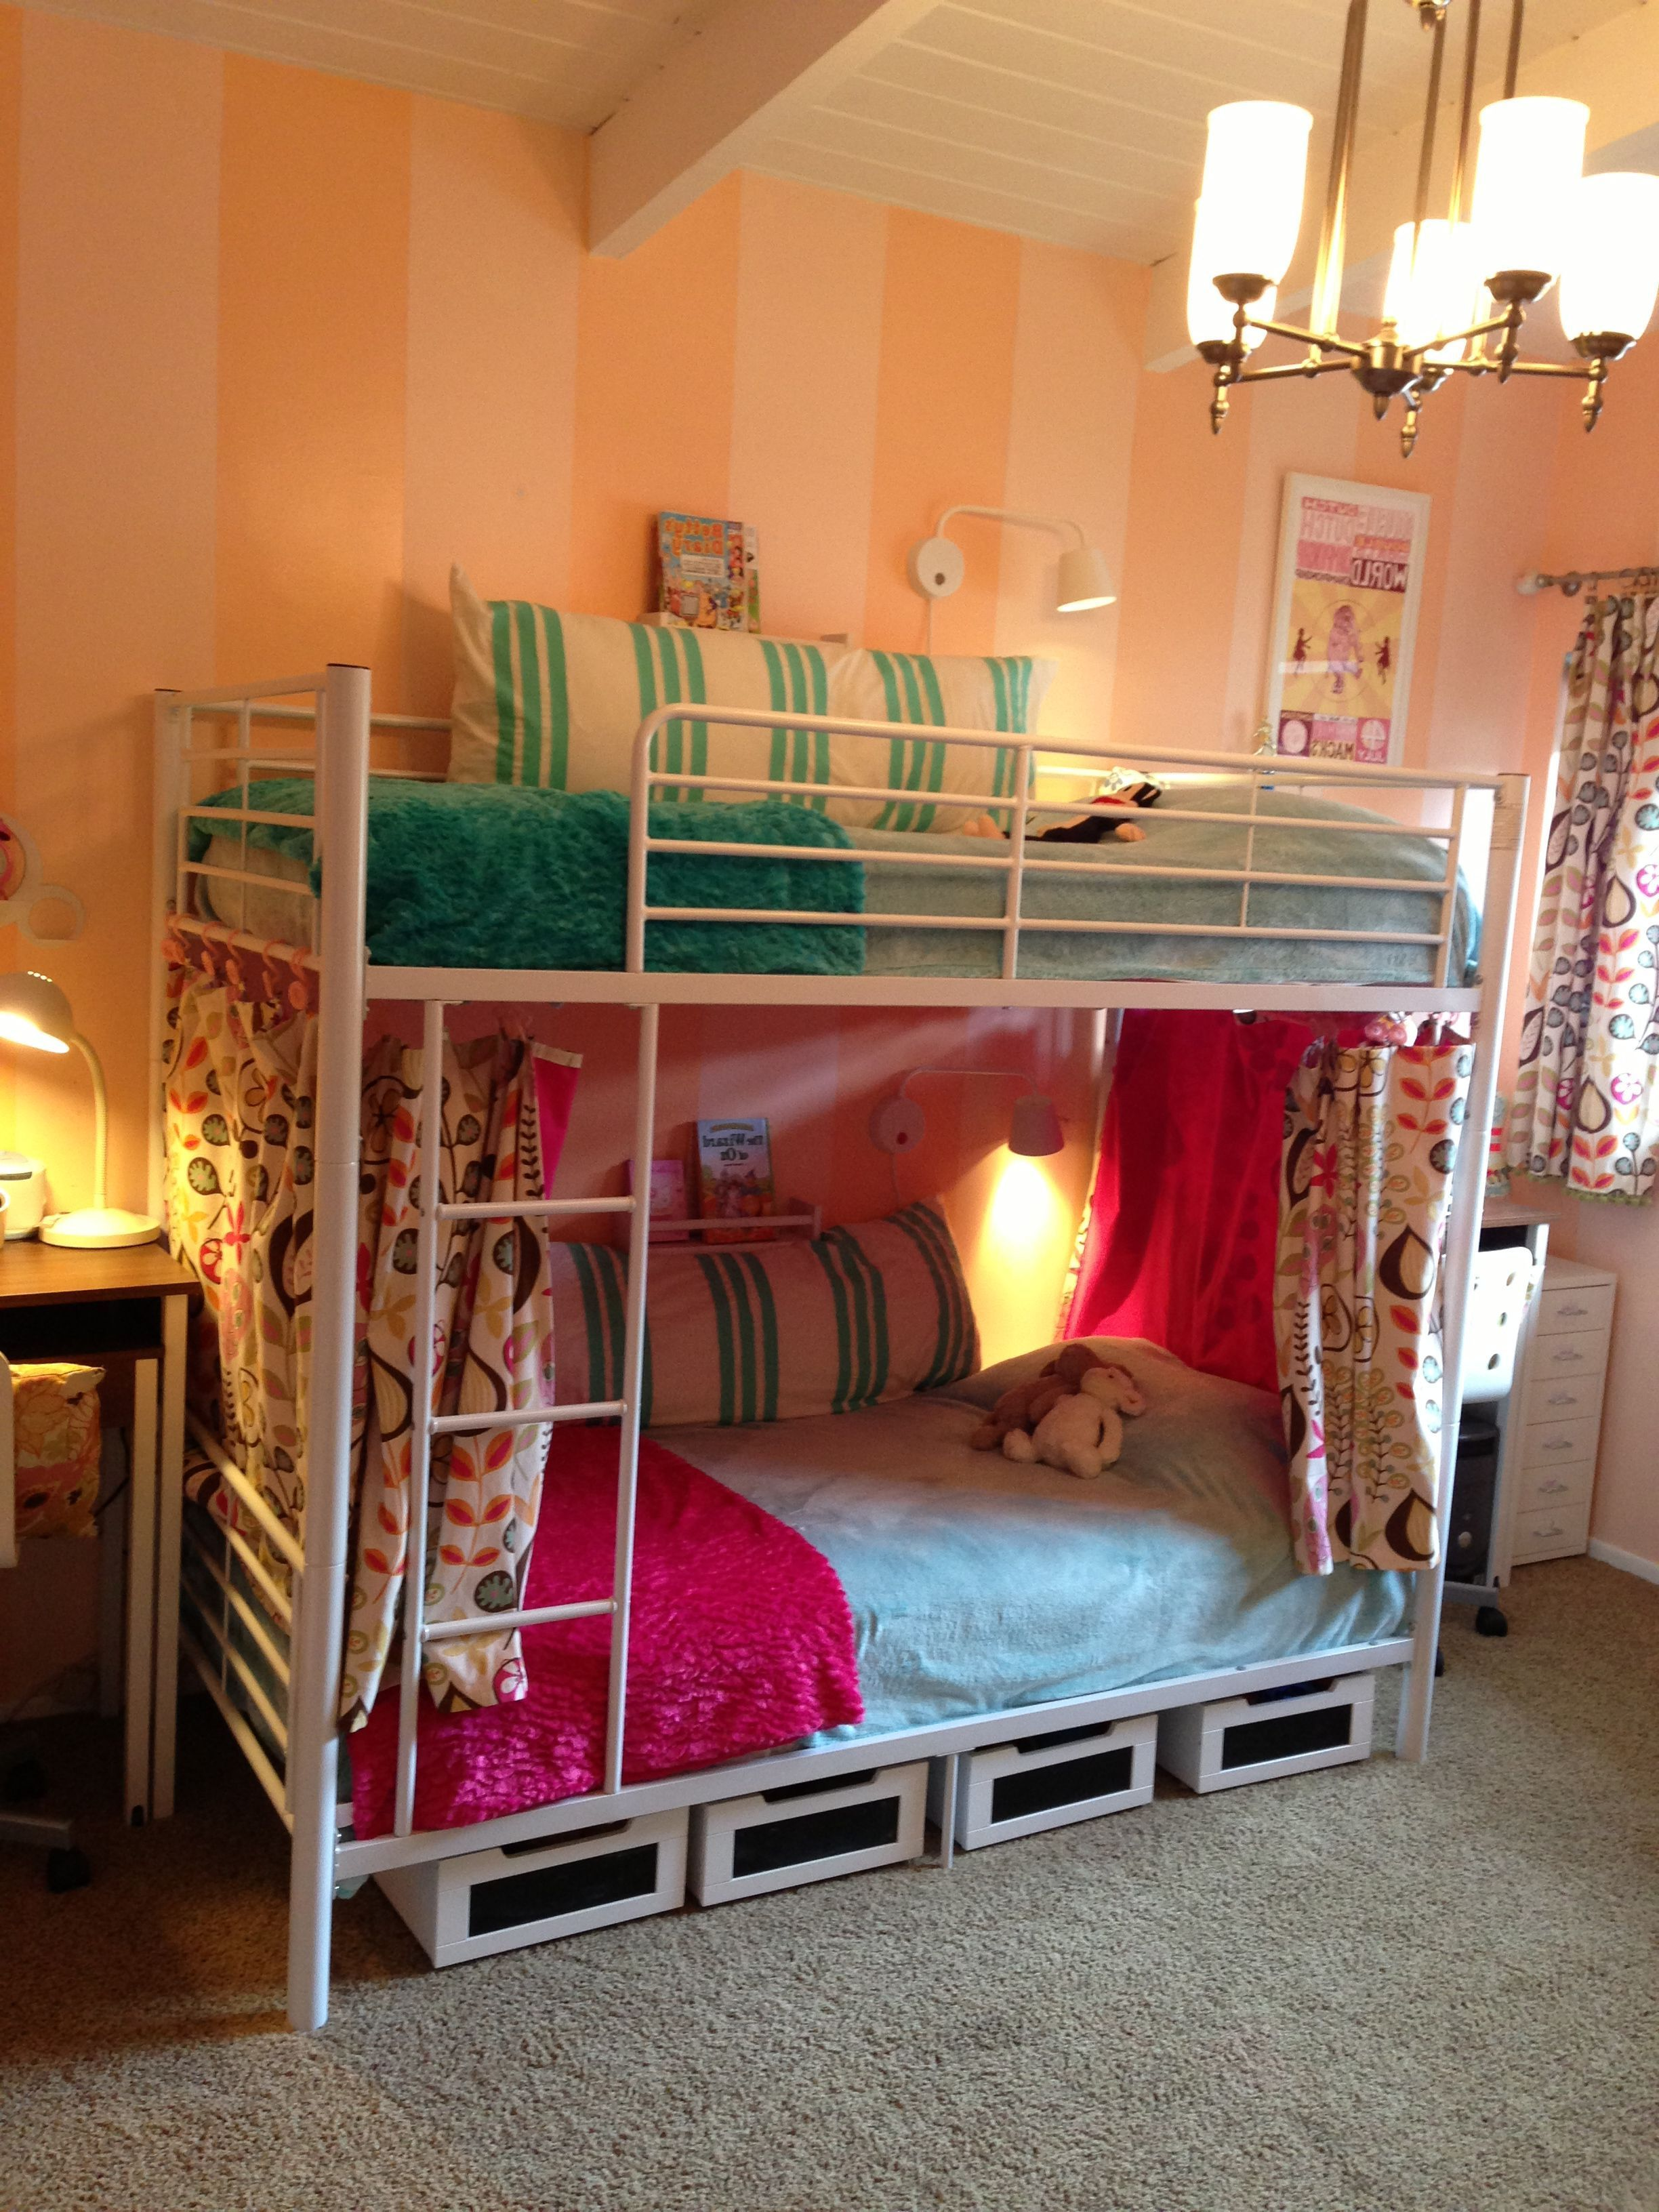 50 Amazing Contemporary Bunk Bed Ideas With Images Metal Bunk Beds Cool Bunk Beds Bunk Beds For Girls Room